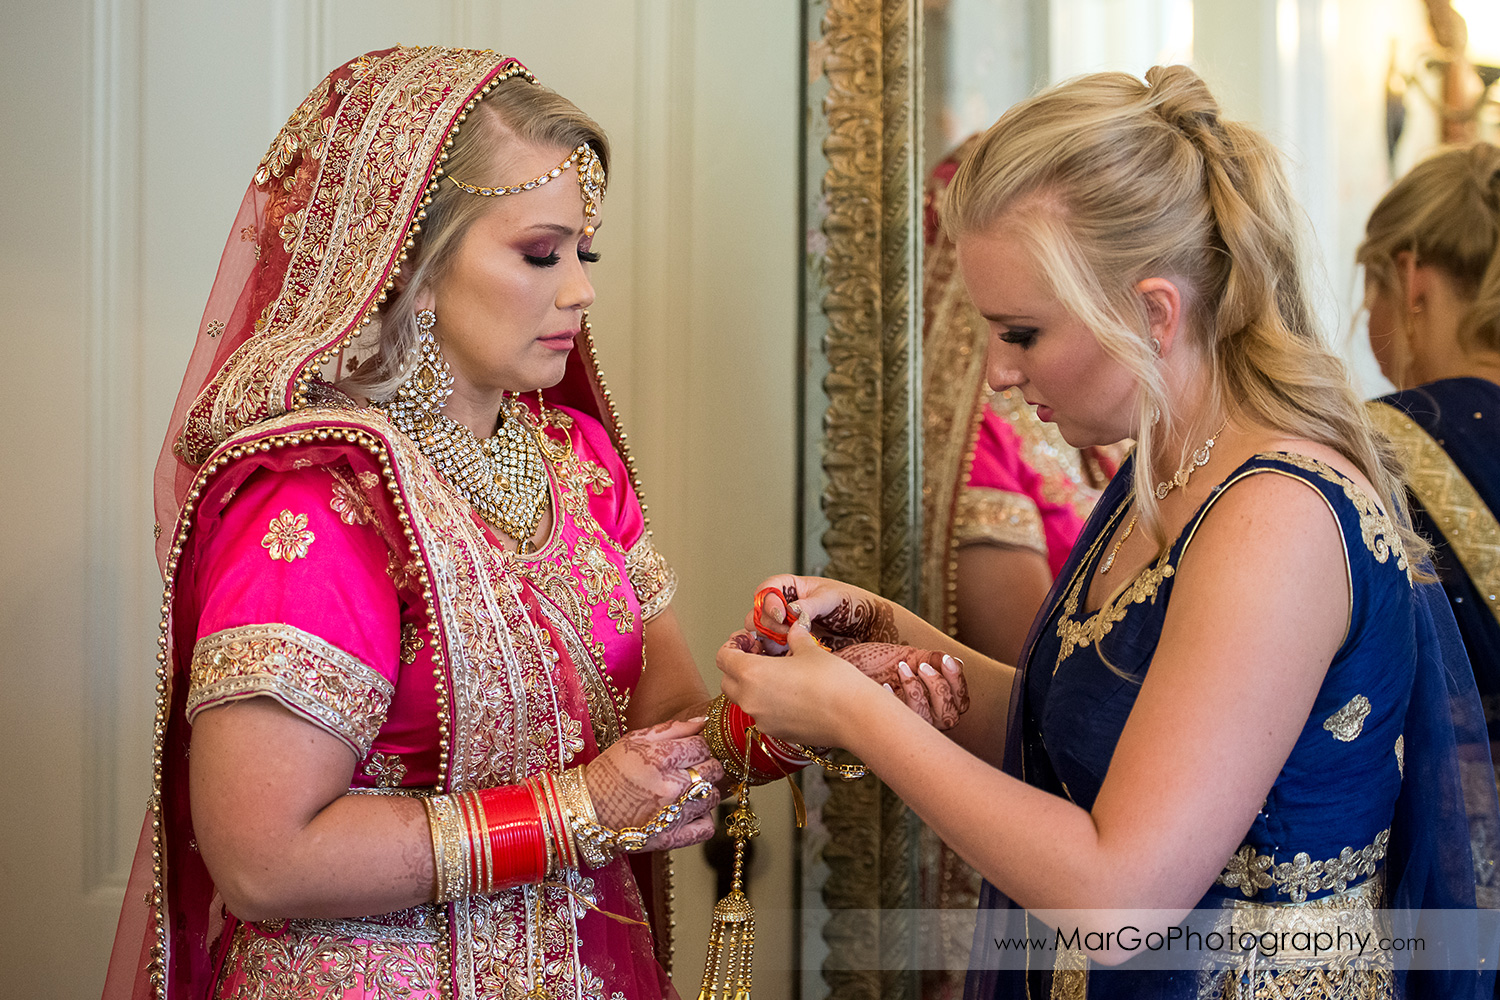 Indian bride in pink saree and her sister in blue dress before wedding ceremony at Elliston Vineyards in Sunol